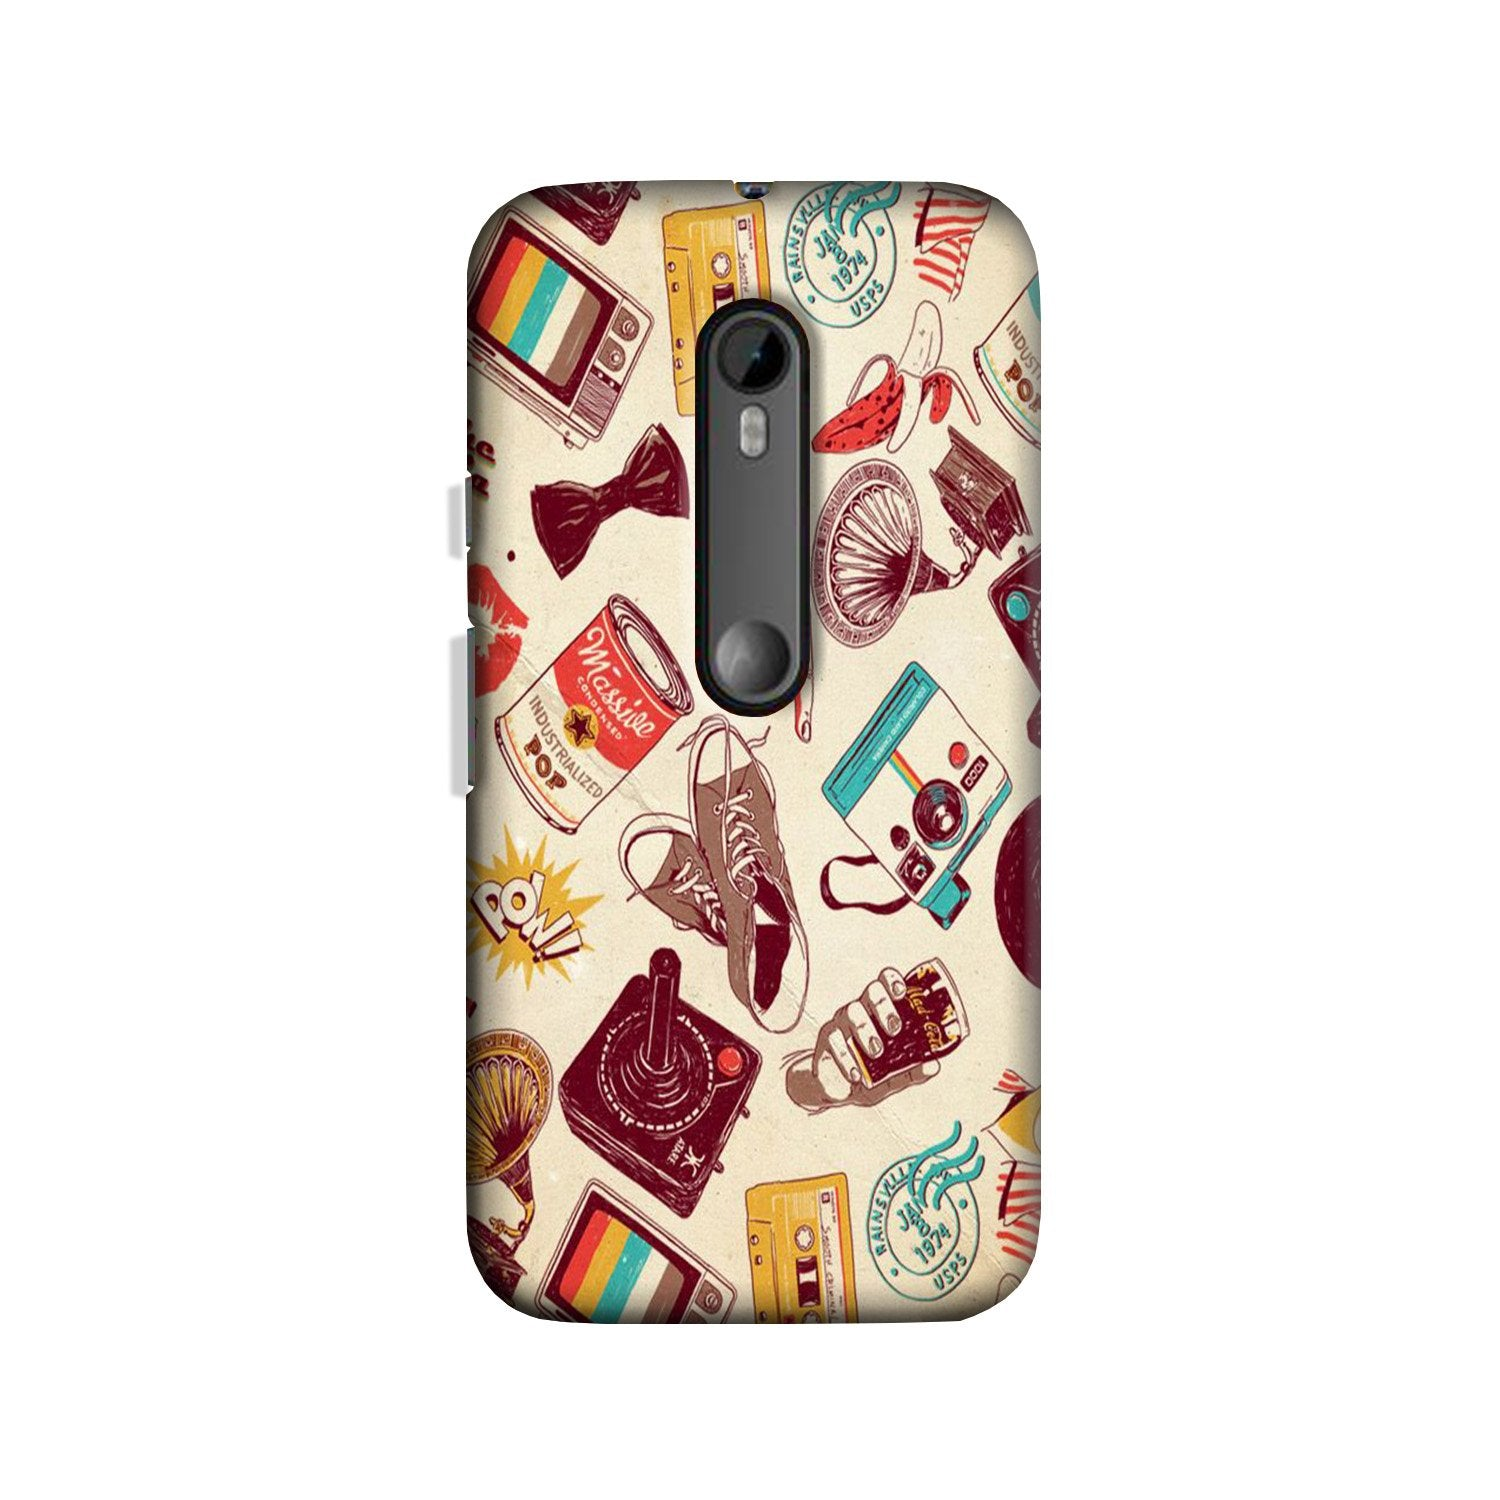 Vintage Case for Moto G 3rd Gen